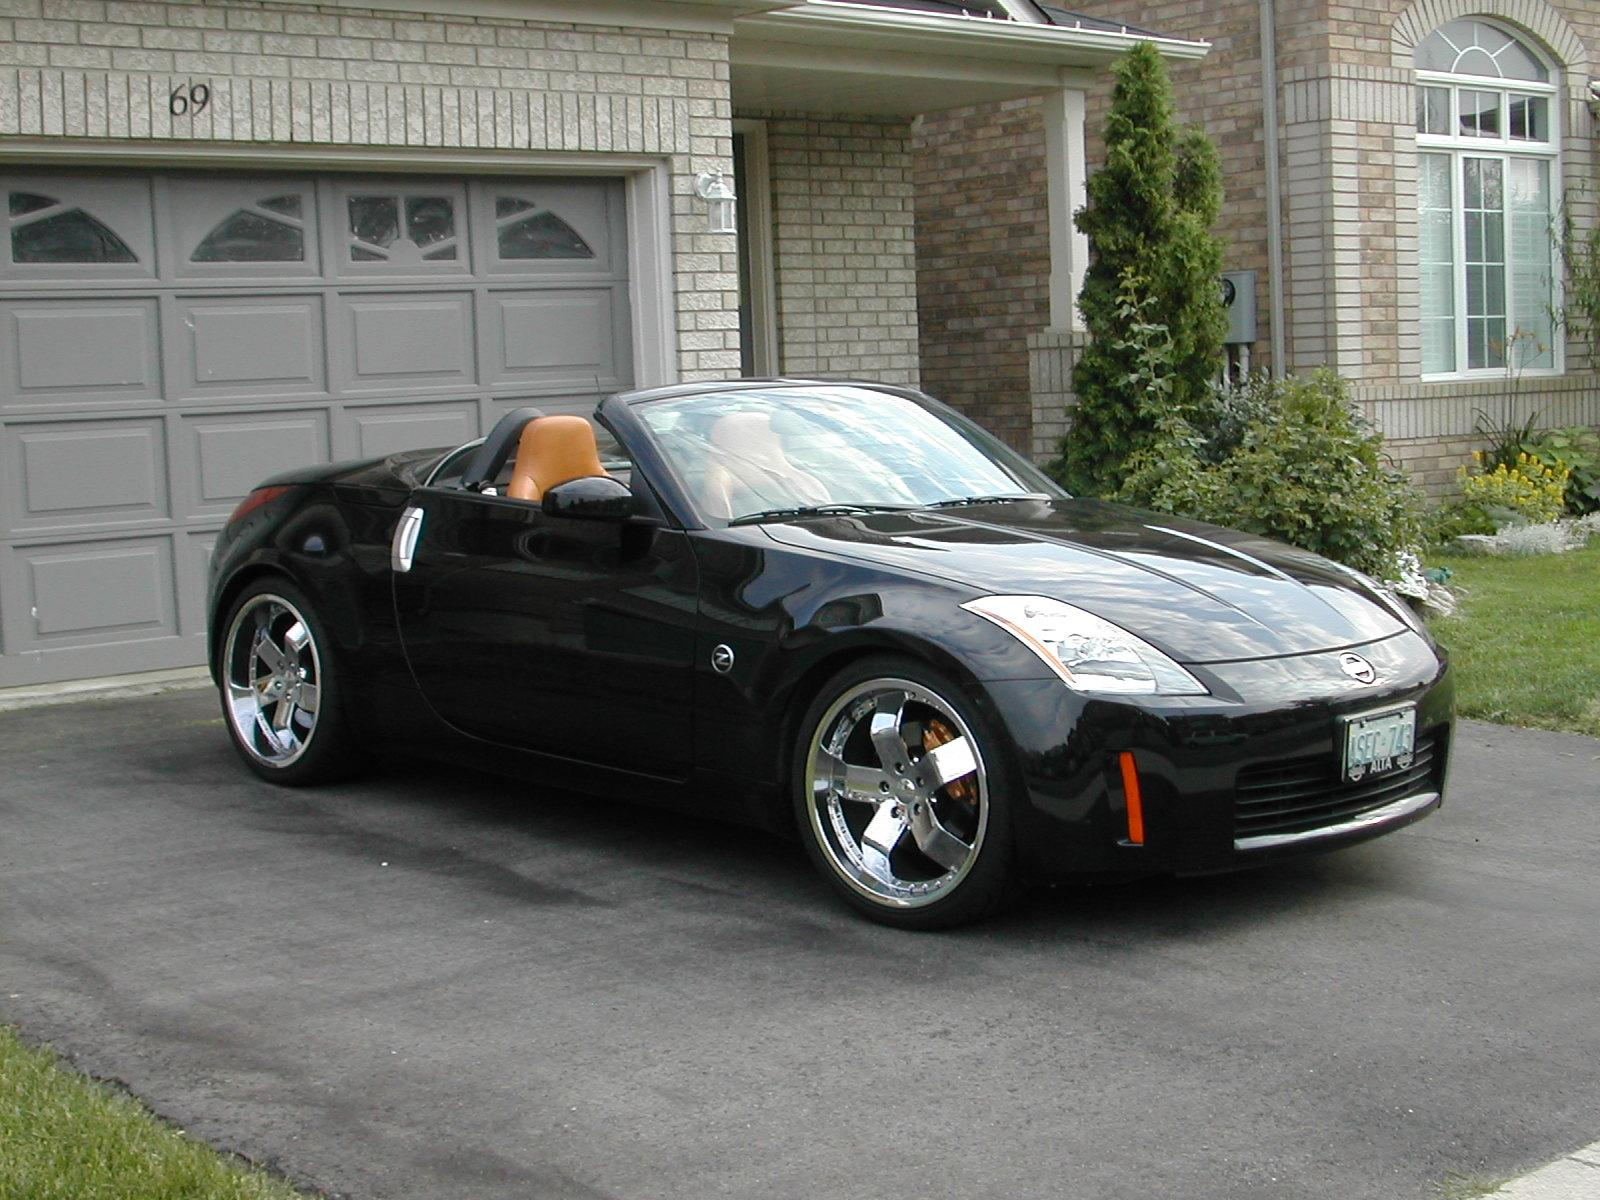 Download 2004 nissan 350z touring edition specs drydevelopers 2004 nissan 350z touring edition specs vanachro Images